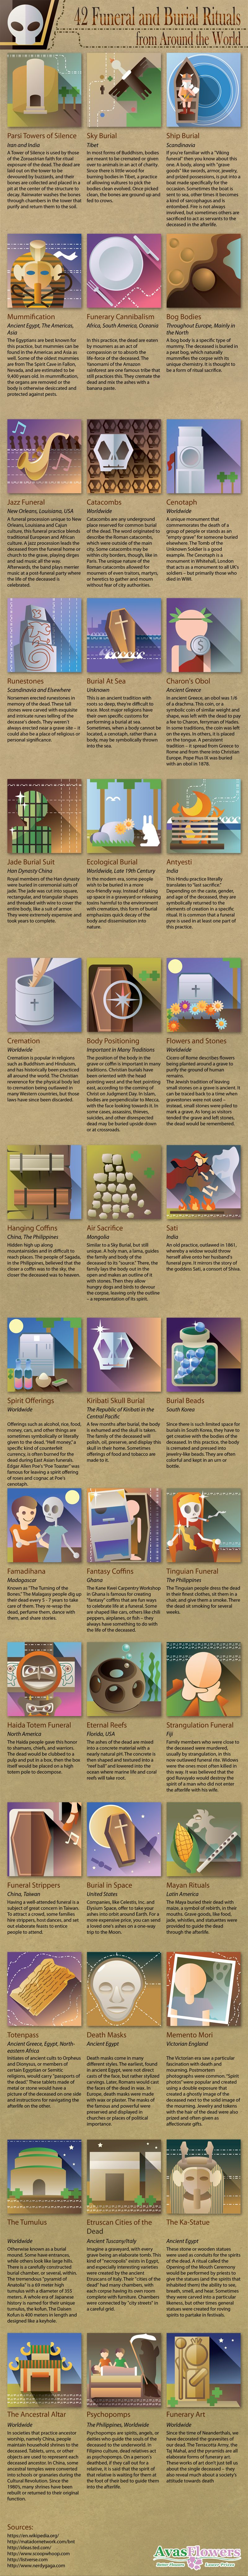 Infographic 42 Funeral And Burial Rituals From Around The World